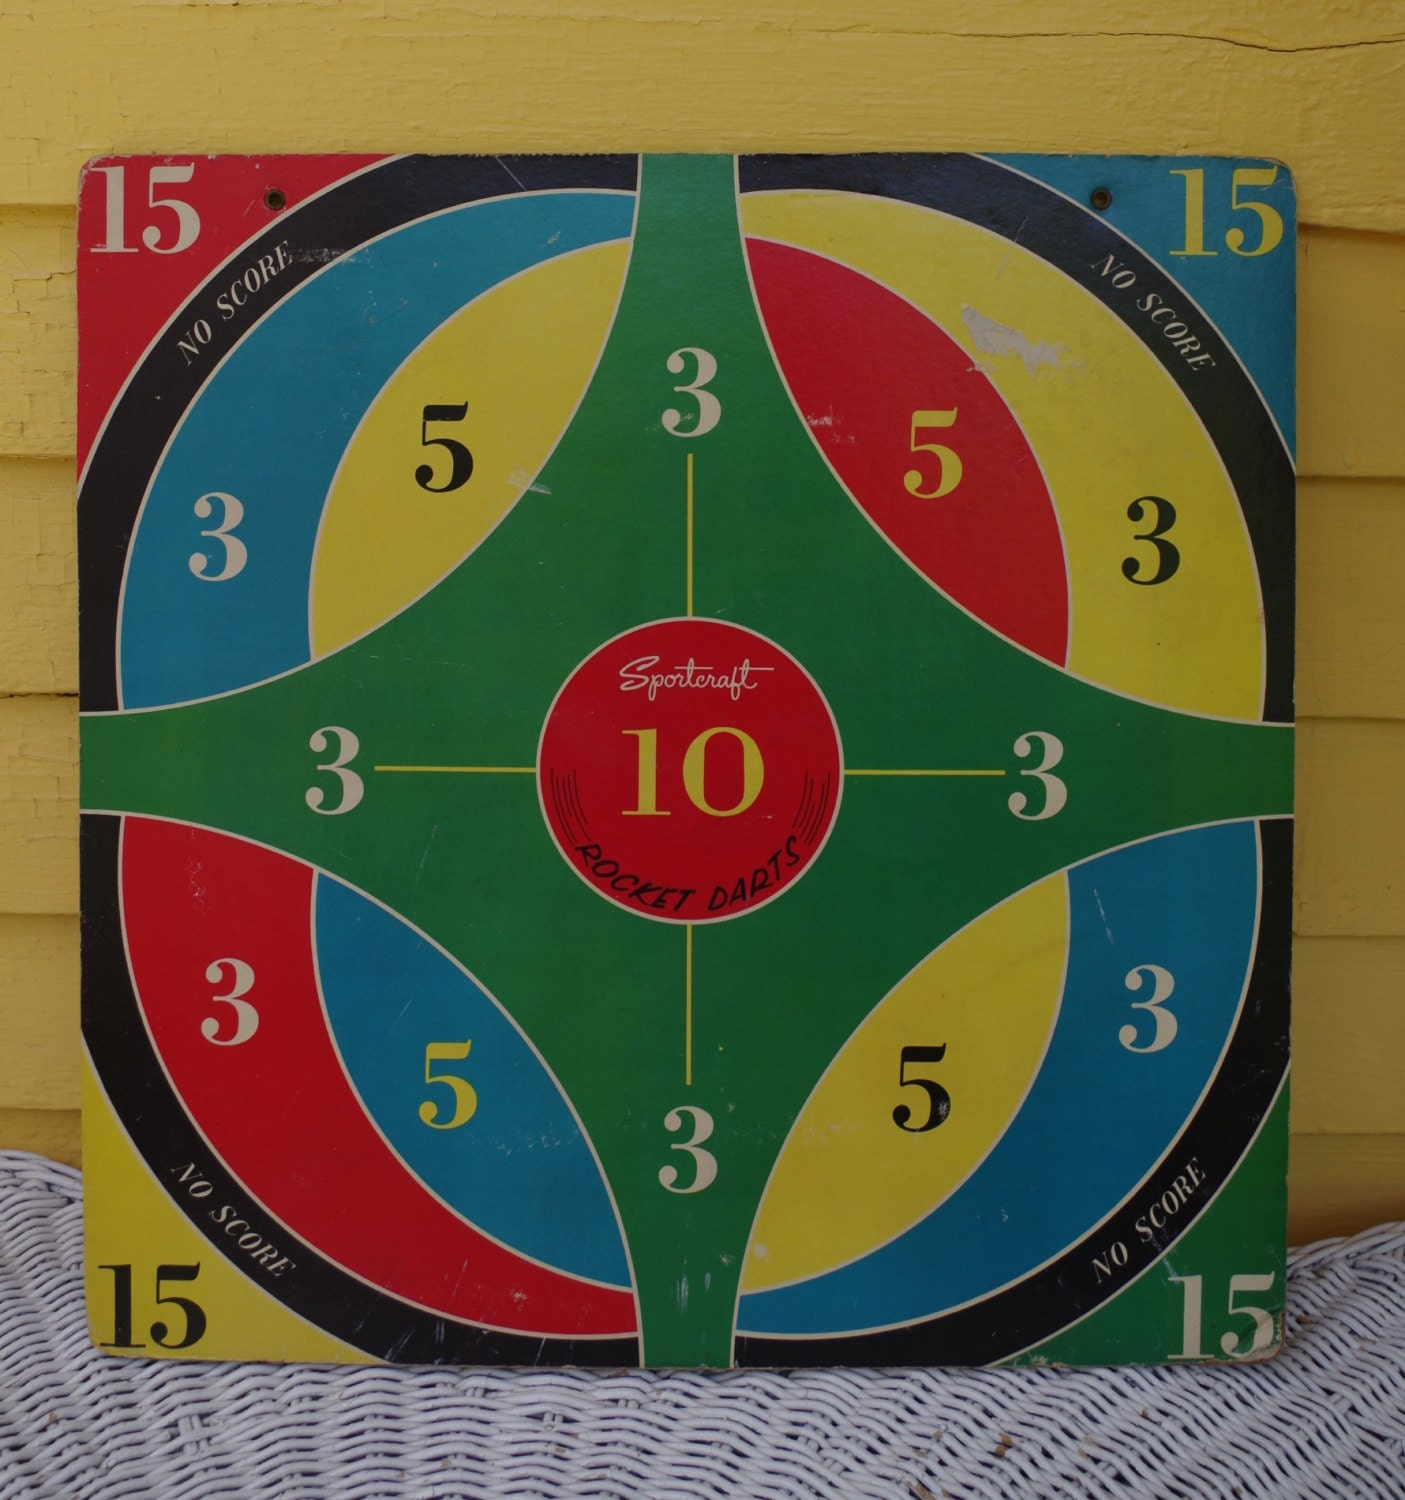 Vintage 1960s Sportcraft Rocket Darts Game Board With Suction